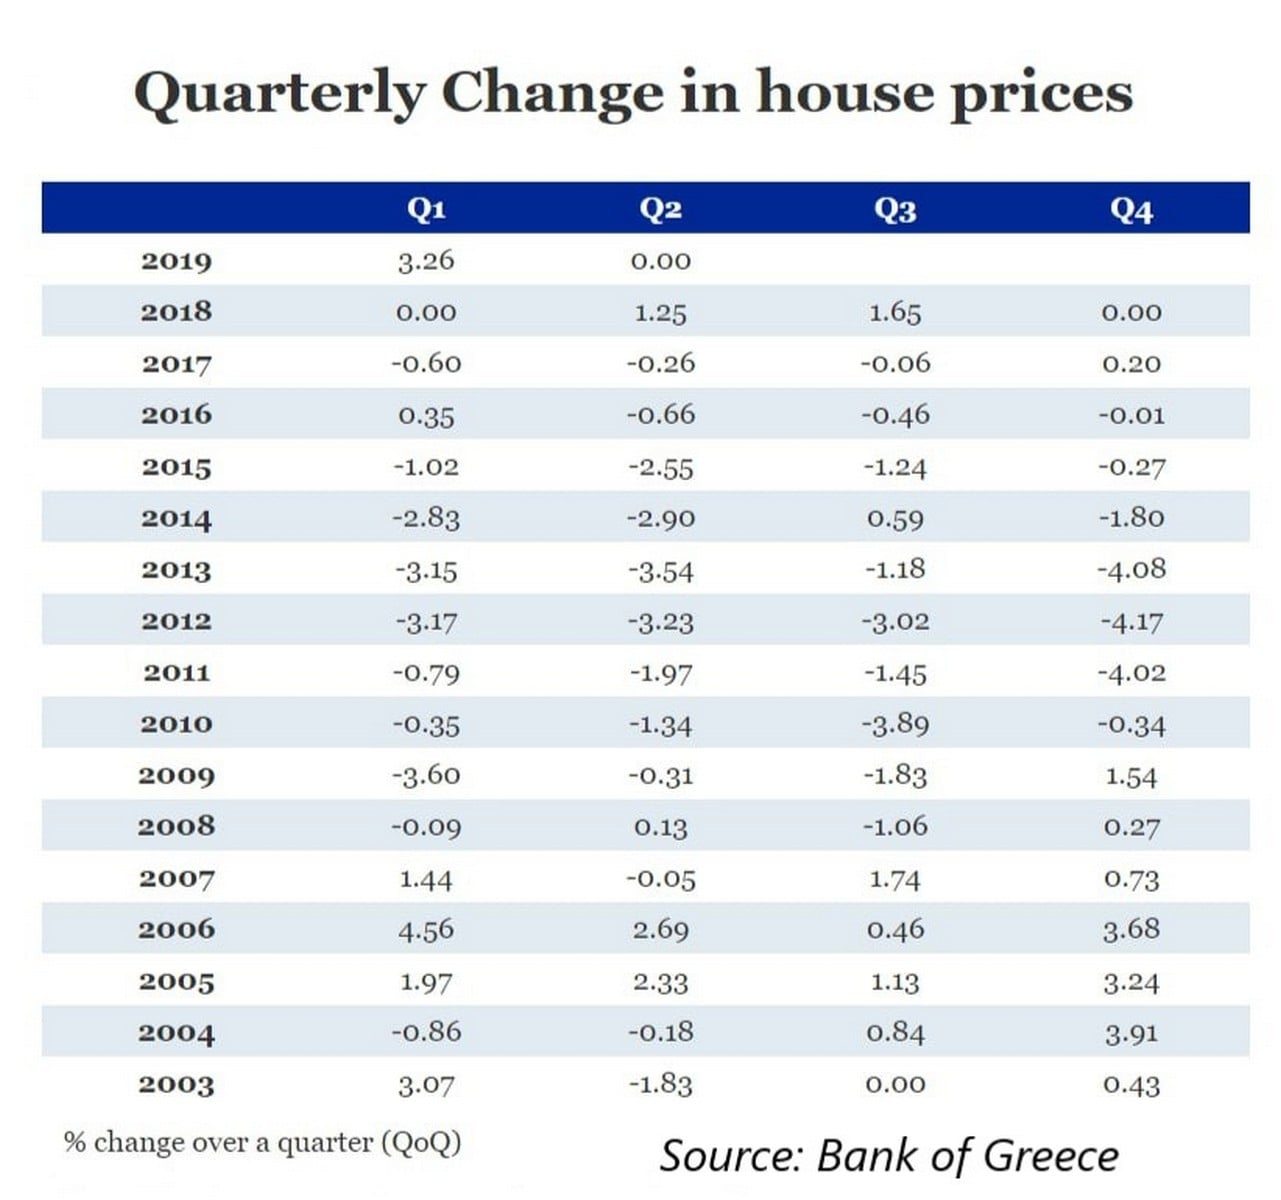 Quarterly Change in House Prices